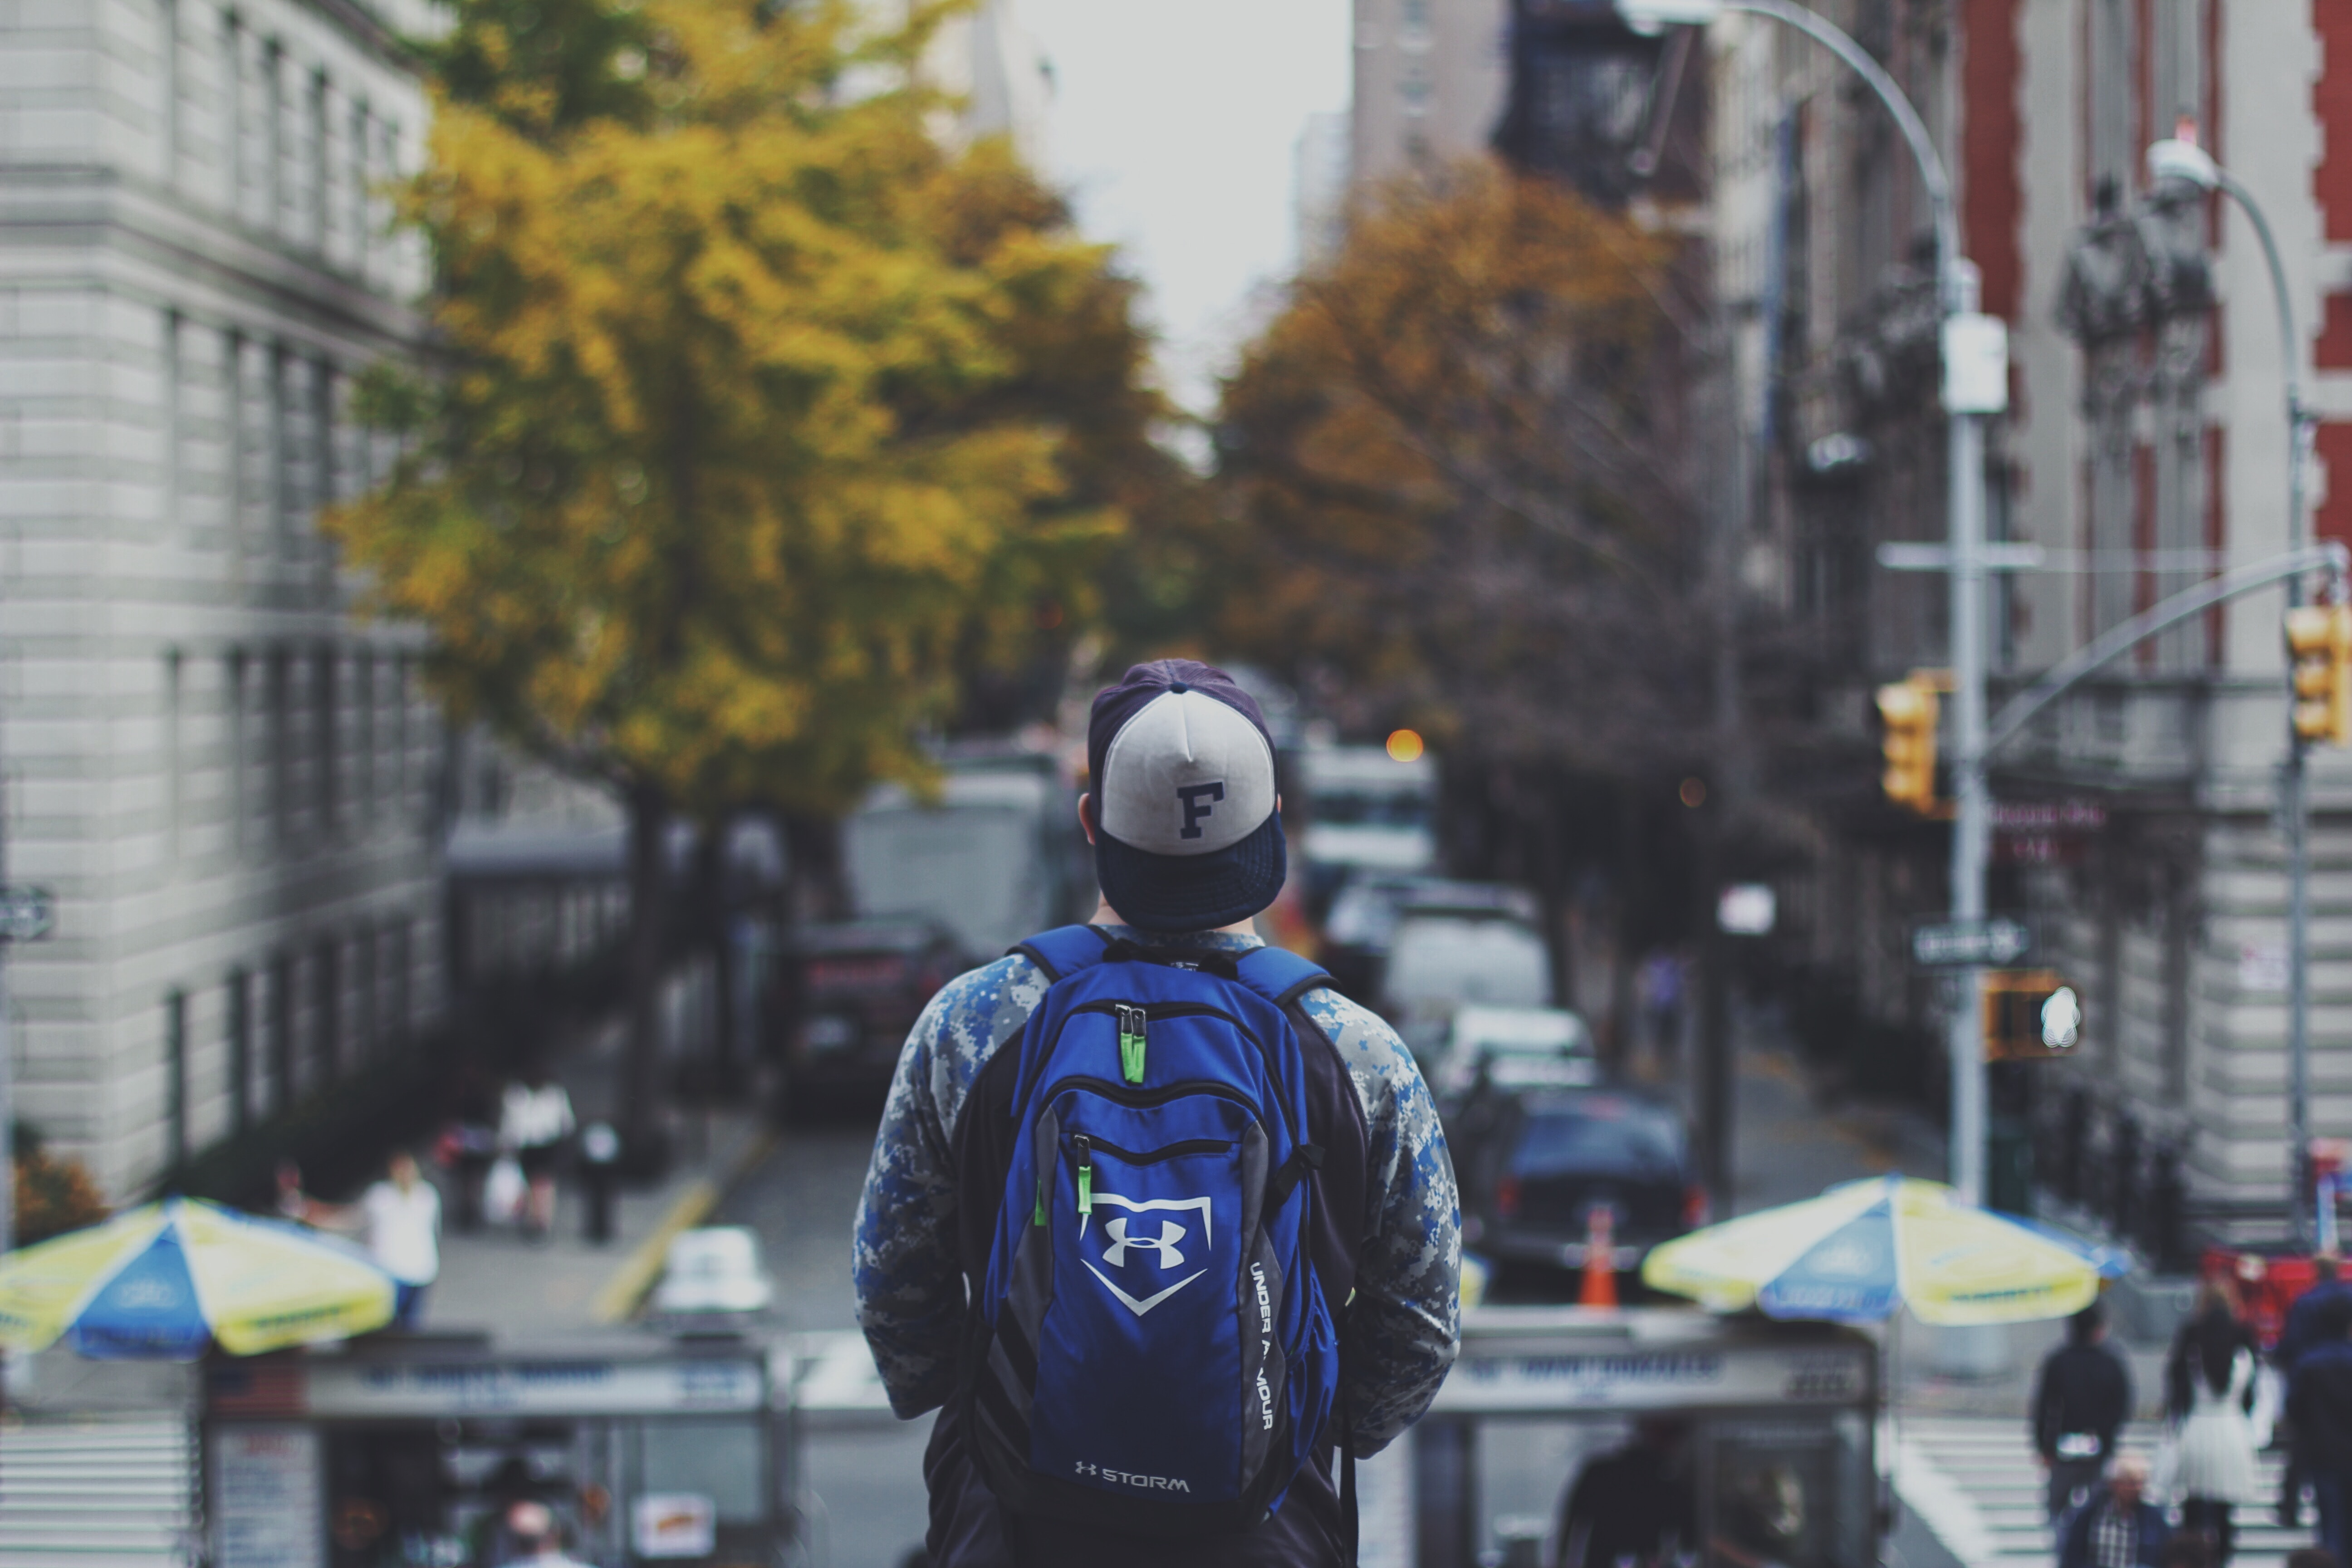 millennial with backpack